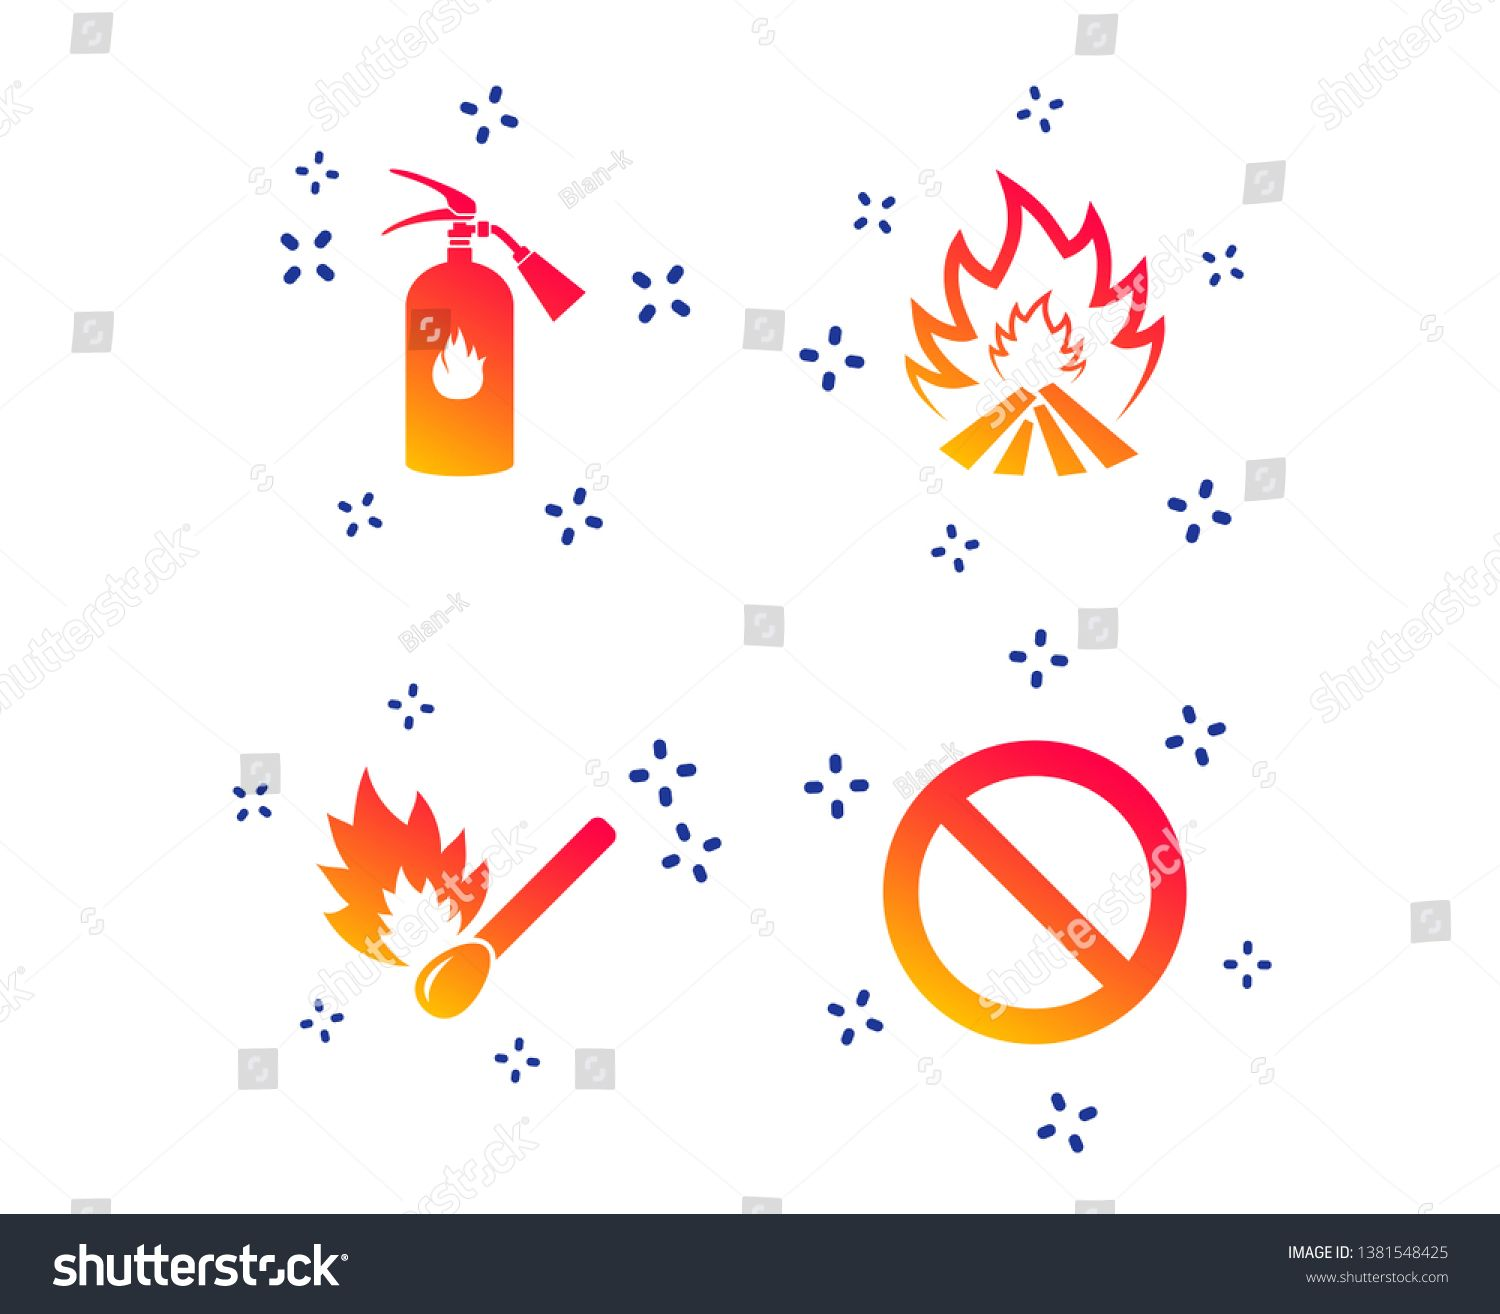 Fire flame icons. Fire extinguisher sign. Prohibition stop